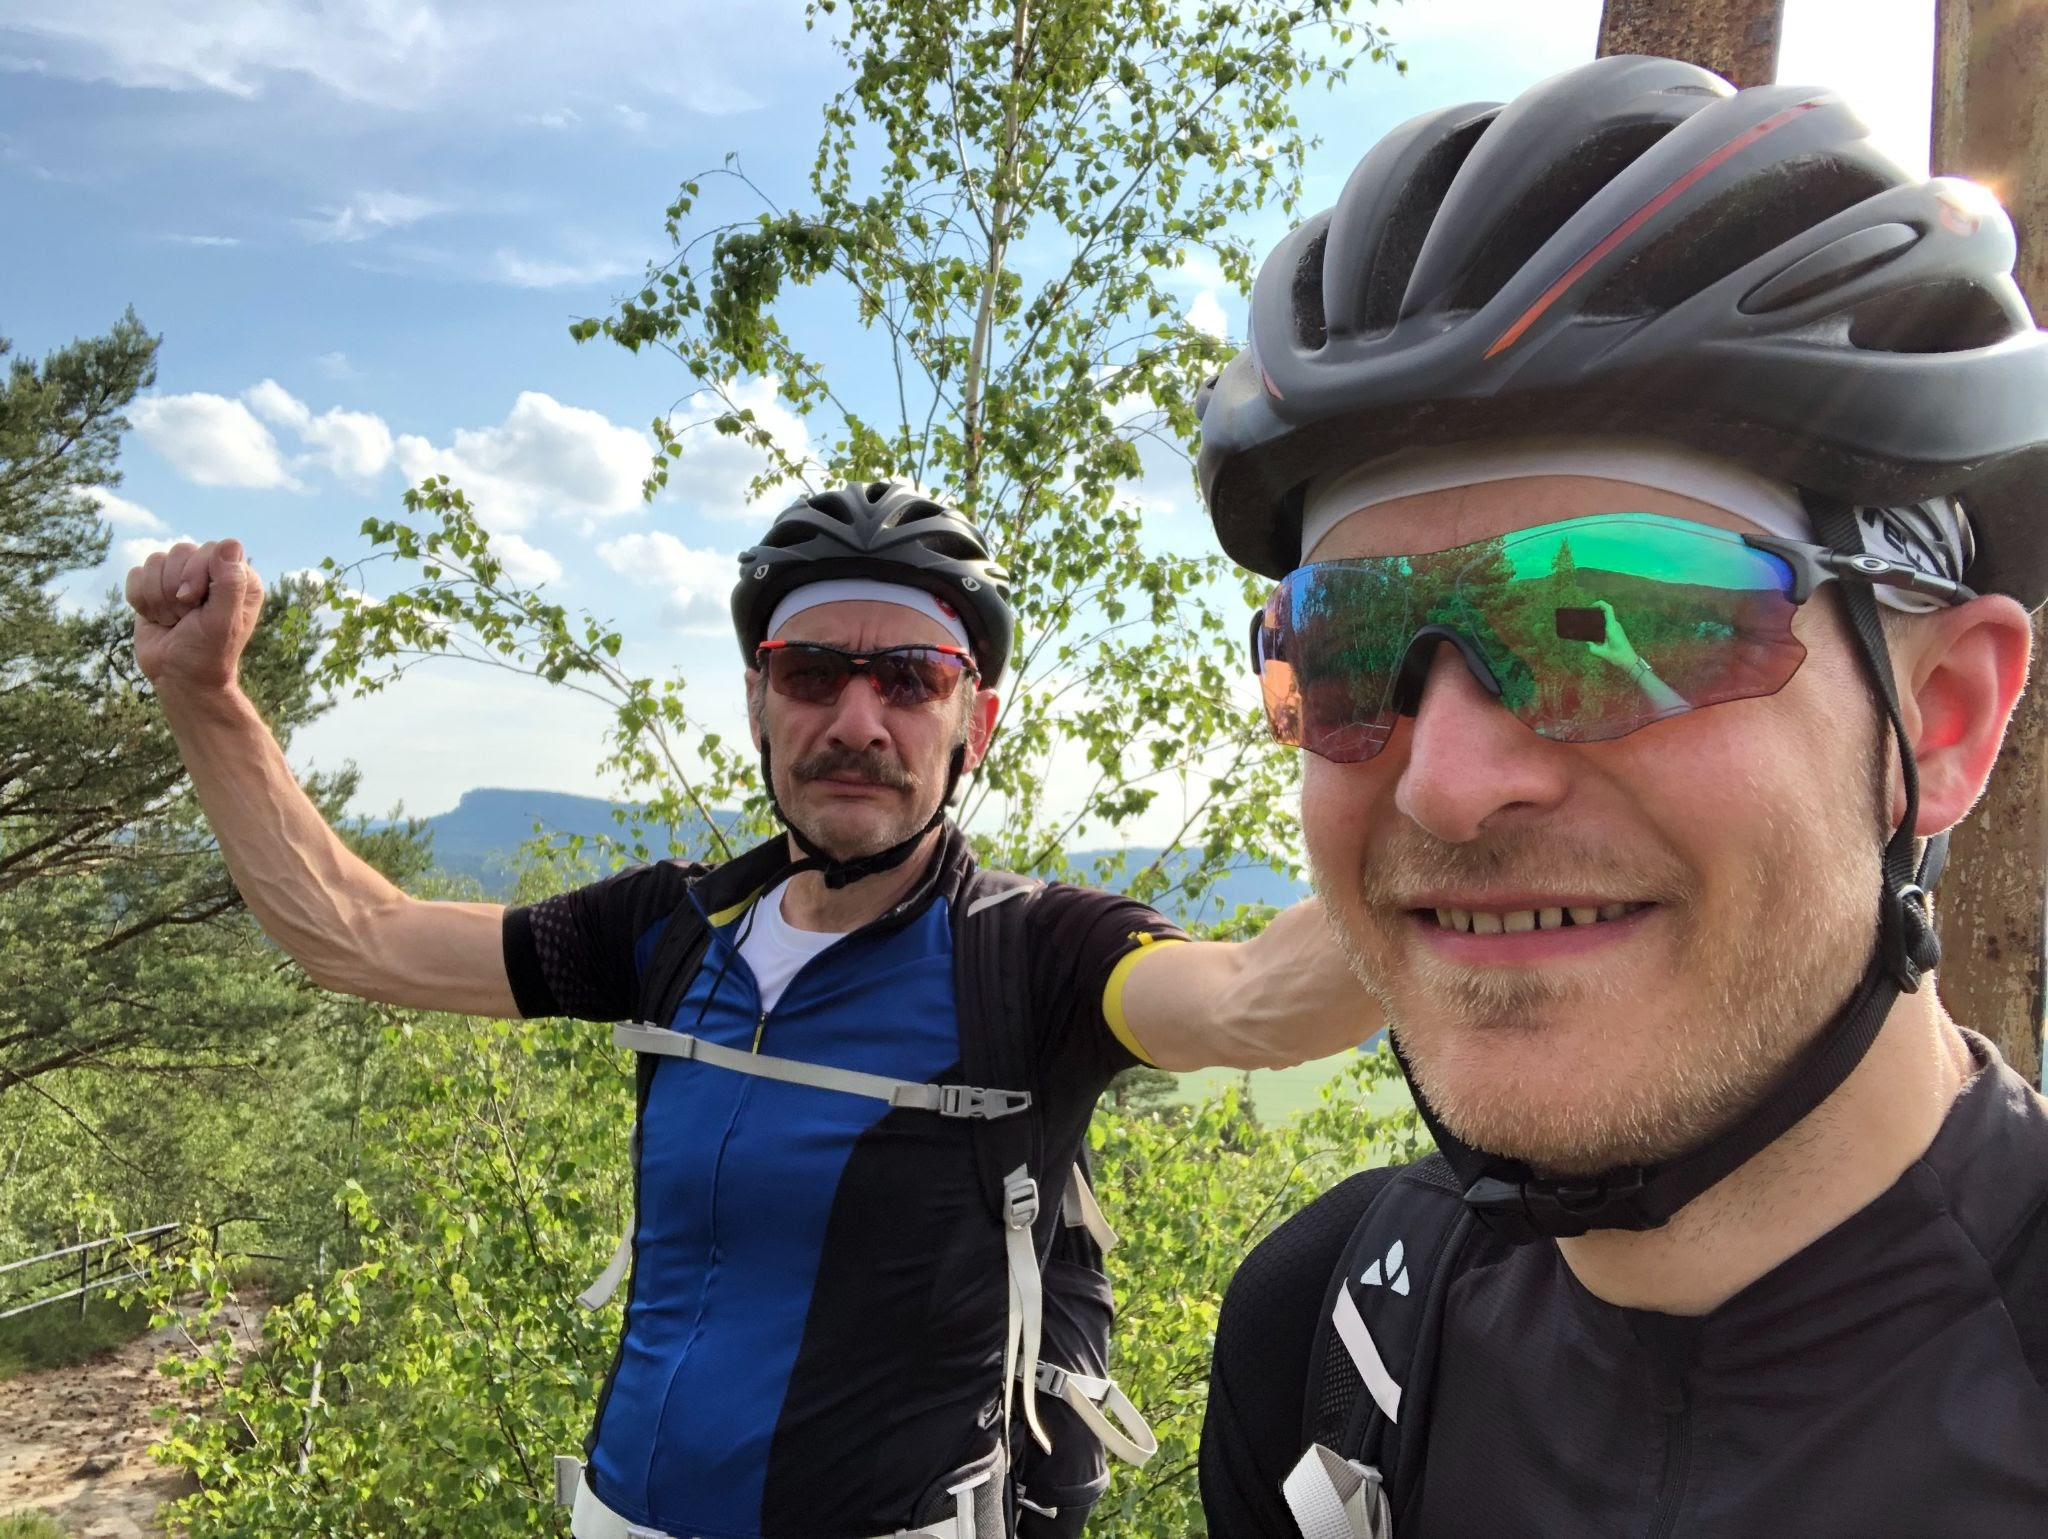 Falk with friend during a bike ride